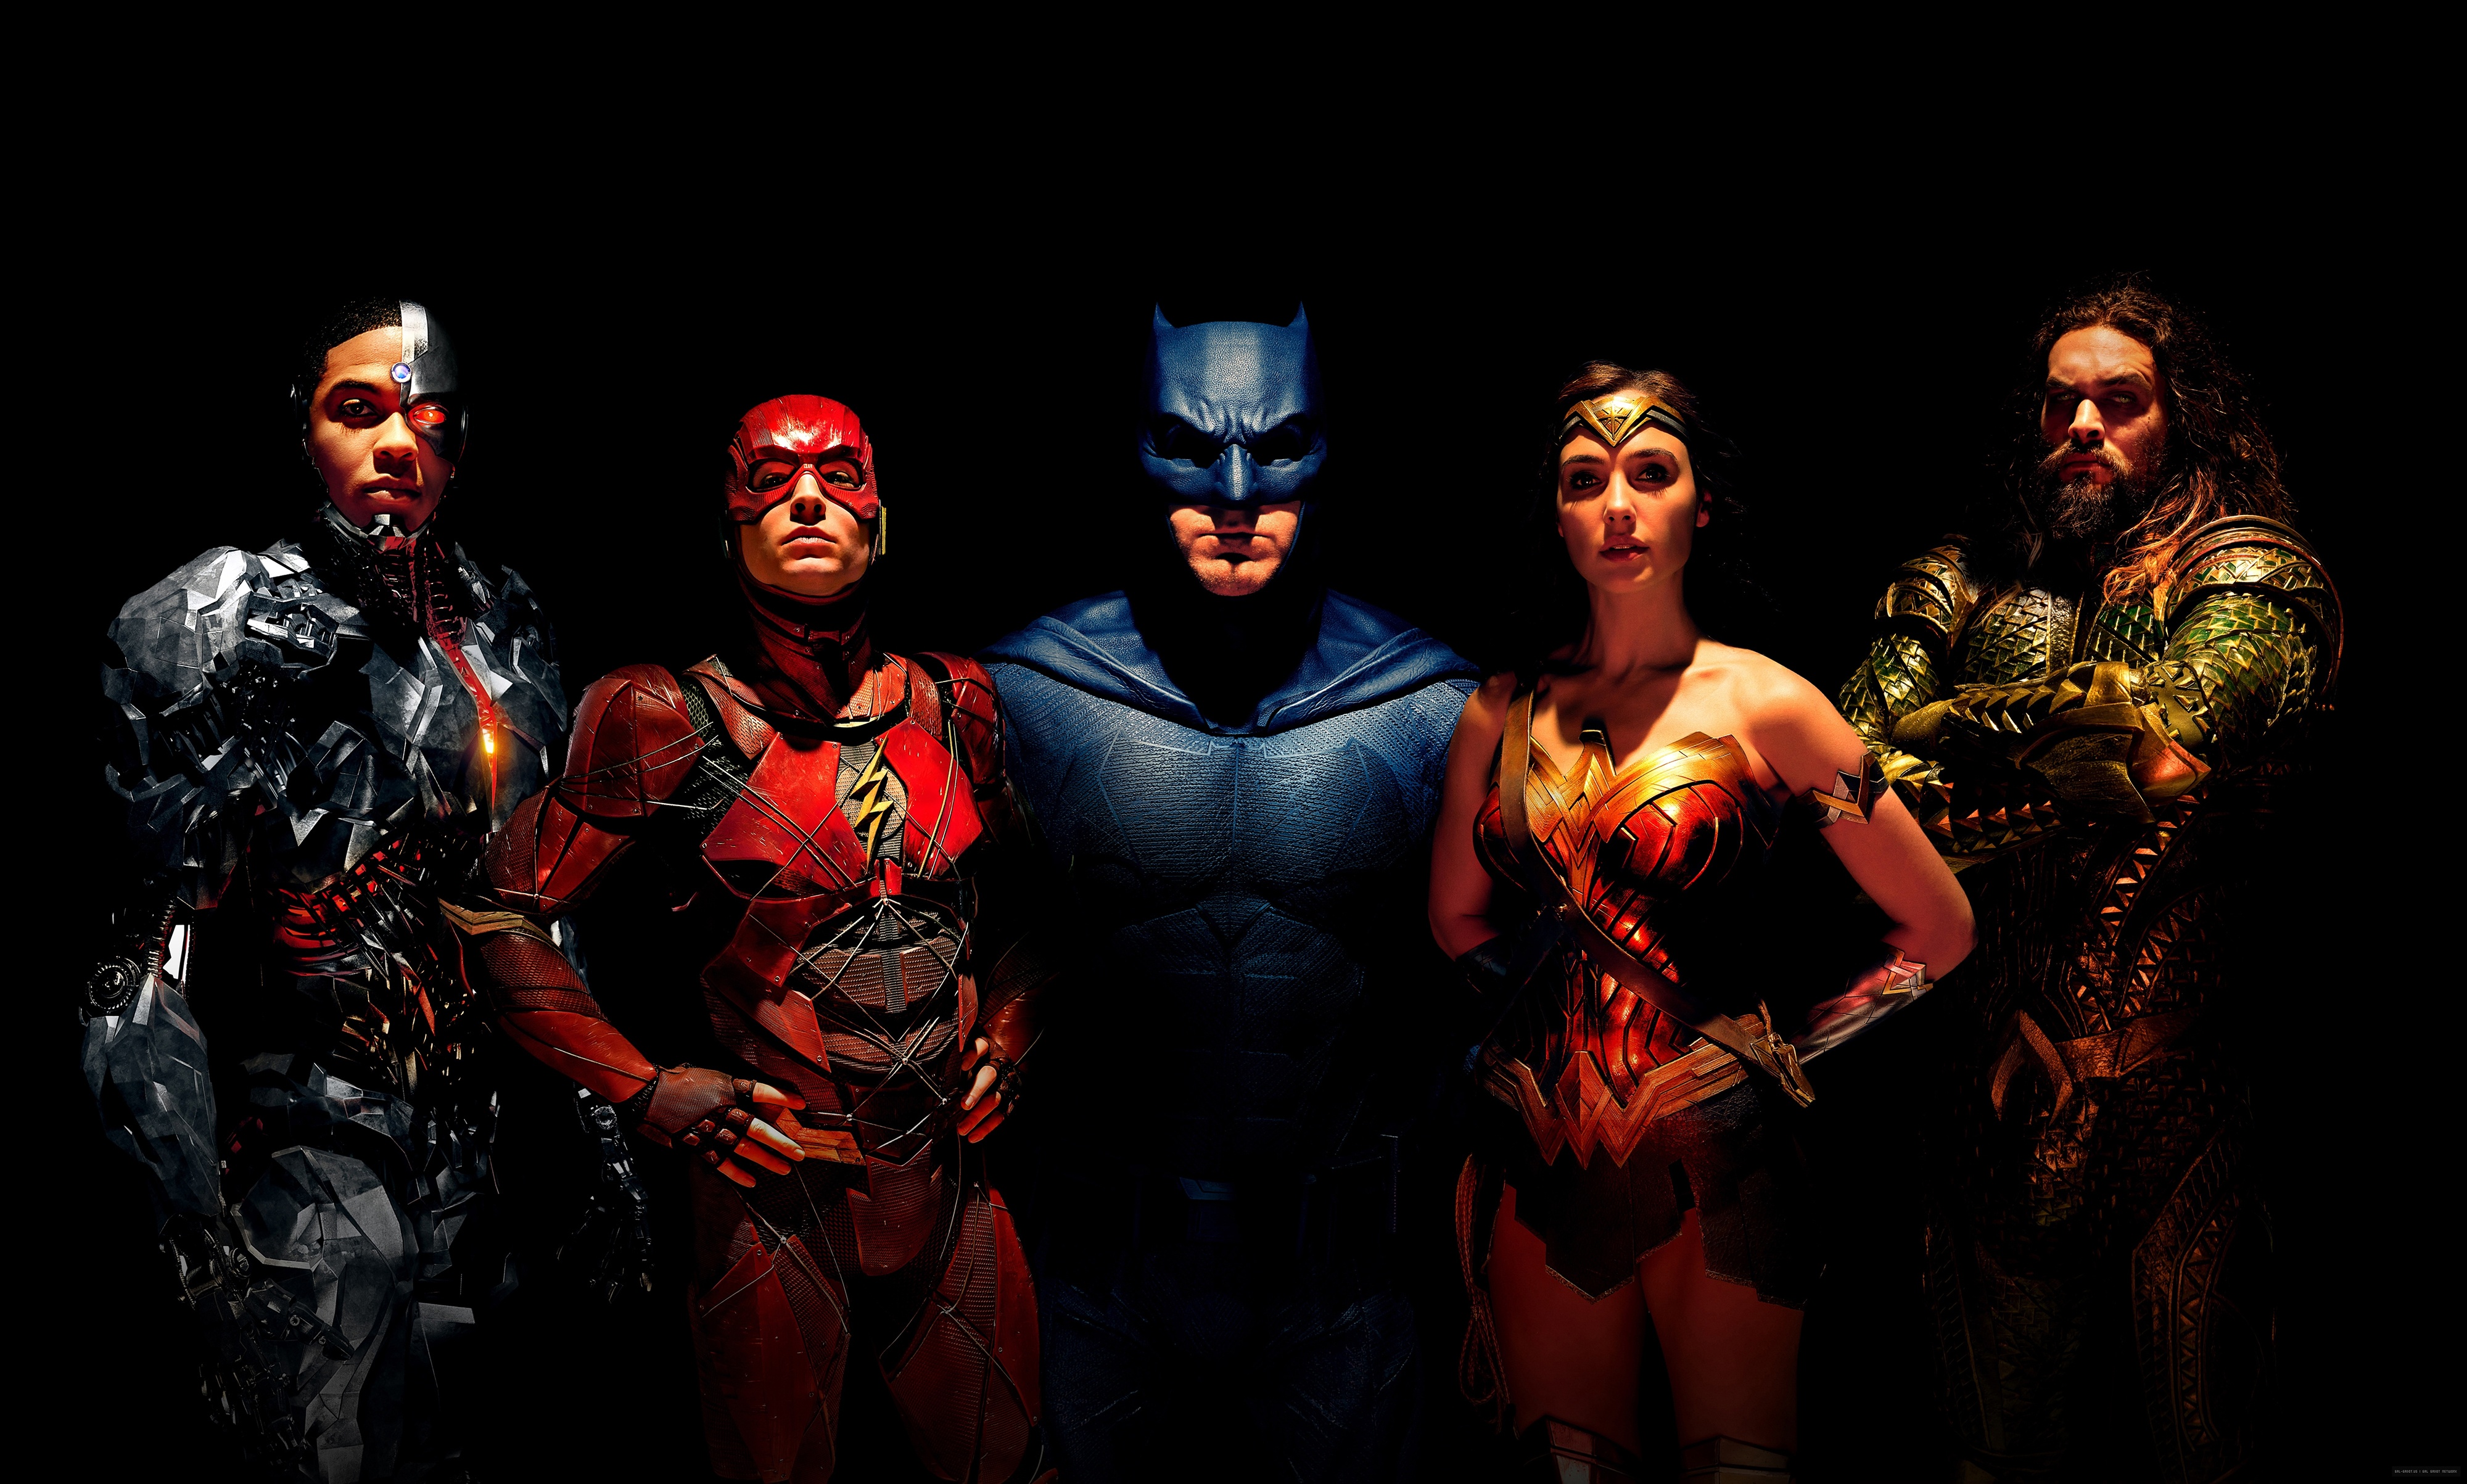 Justice League 2017 movie cast DCEU WB bomb flop disappointing